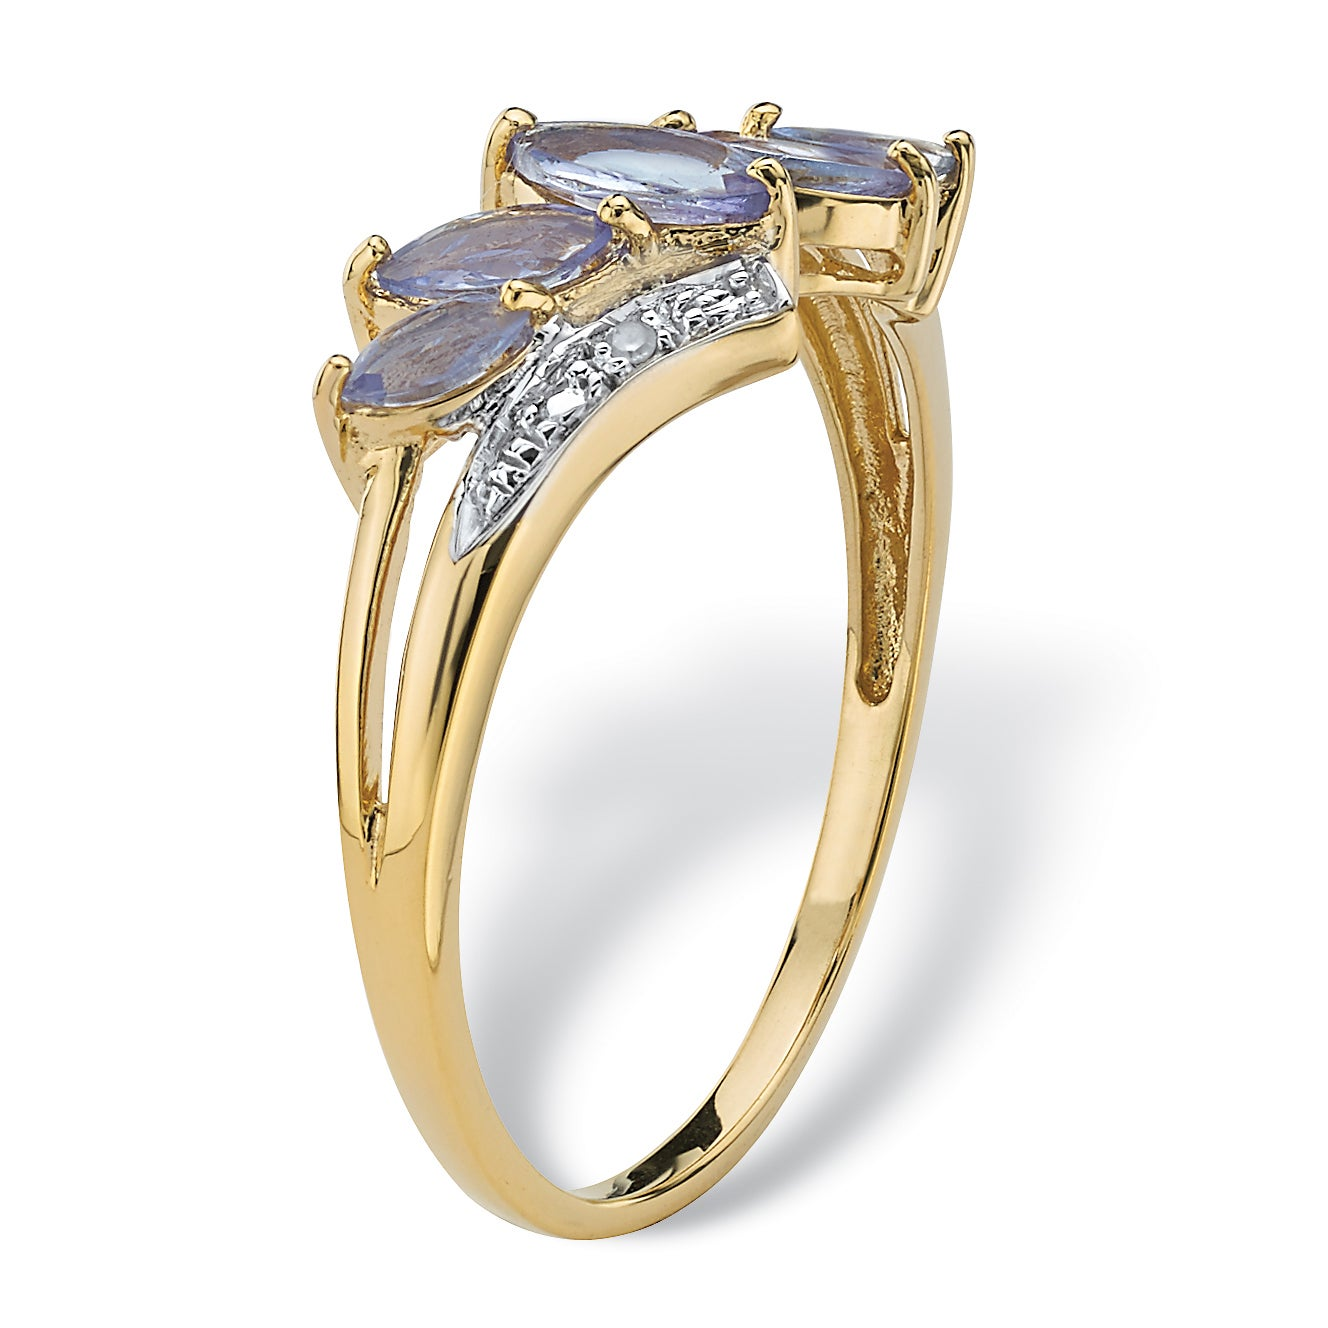 bf8e4cc04 Shop .76 TCW Genuine Purple Tanzanite with Diamond Accent 18k Gold over  Sterling Silver Ring - Free Shipping Today - Overstock - 7377942